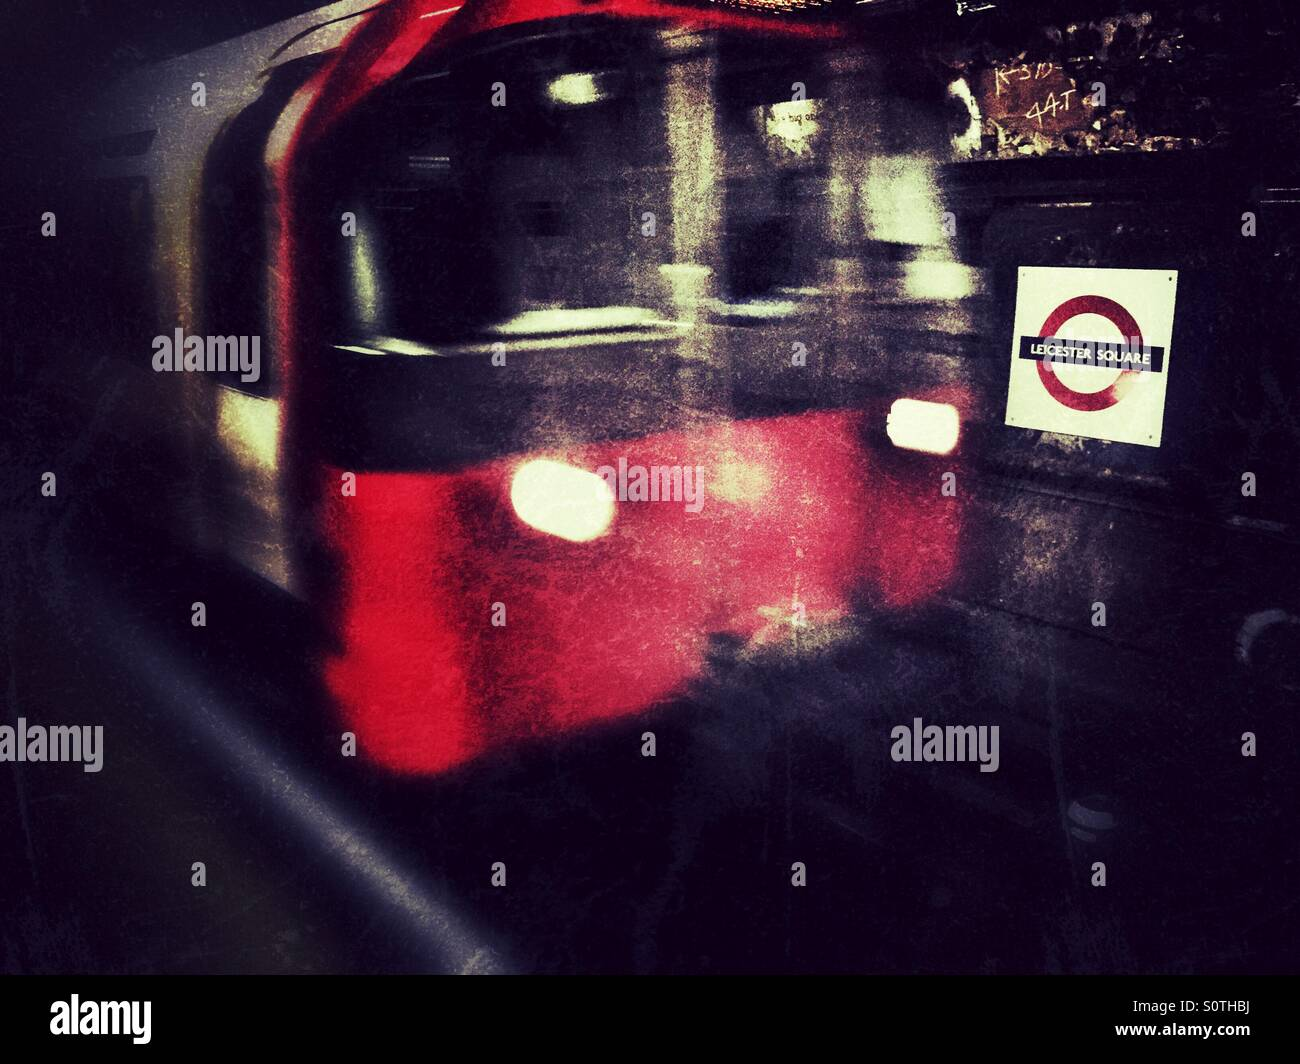 Train approaching Leicester Square station, London - Stock Image